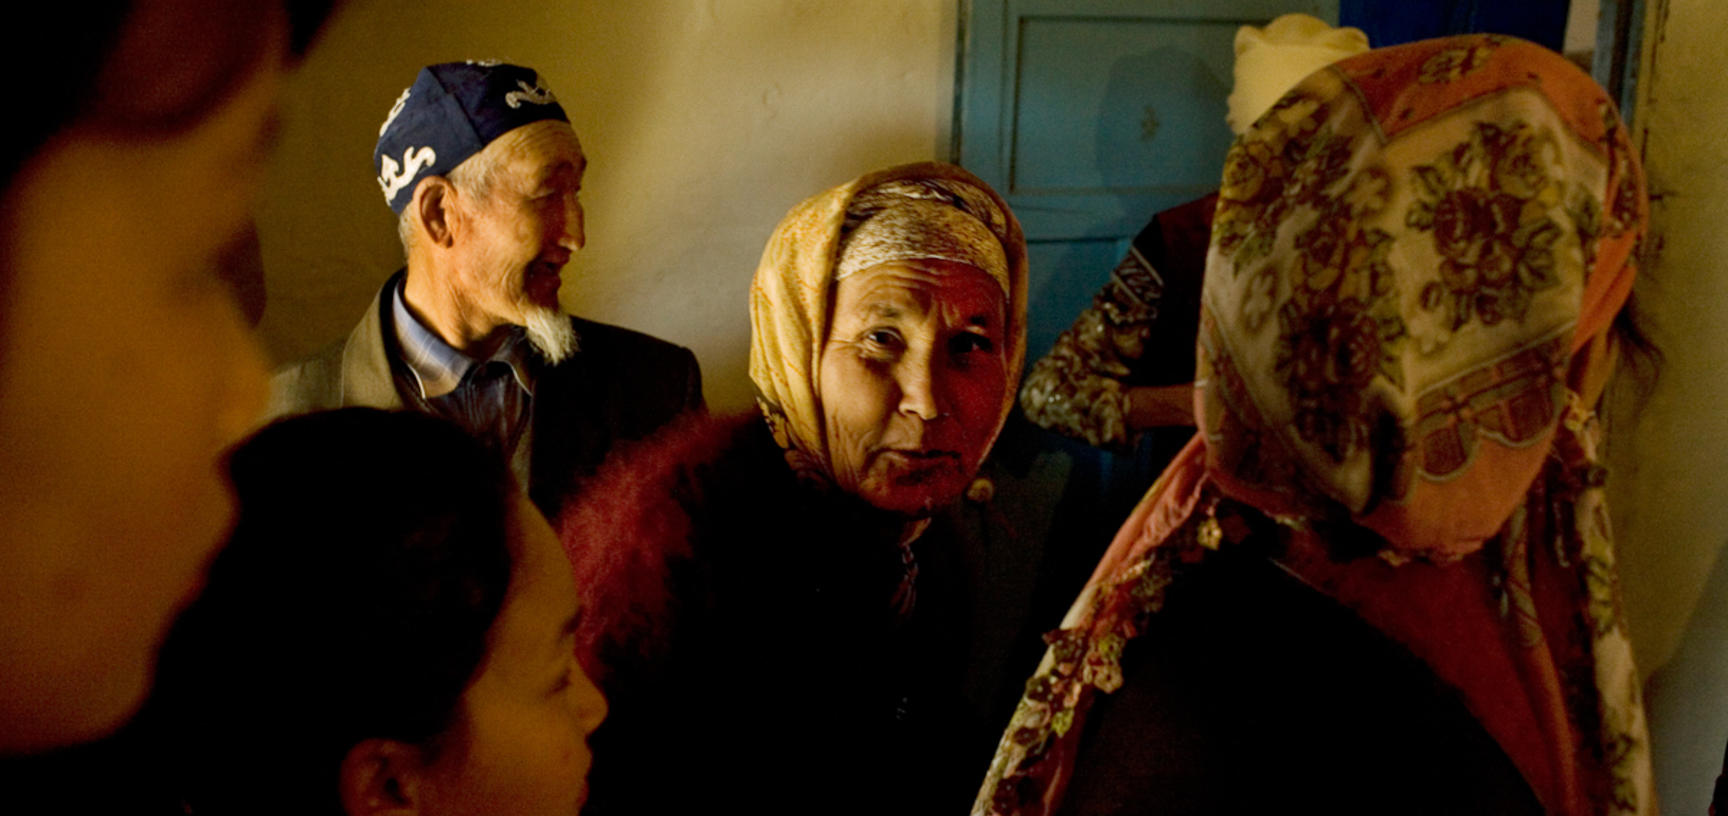 Guests enter a village home during the annual Navrus festival. Shege, Uzbekistan. Photograph by Carolyn Drake. March 2008.